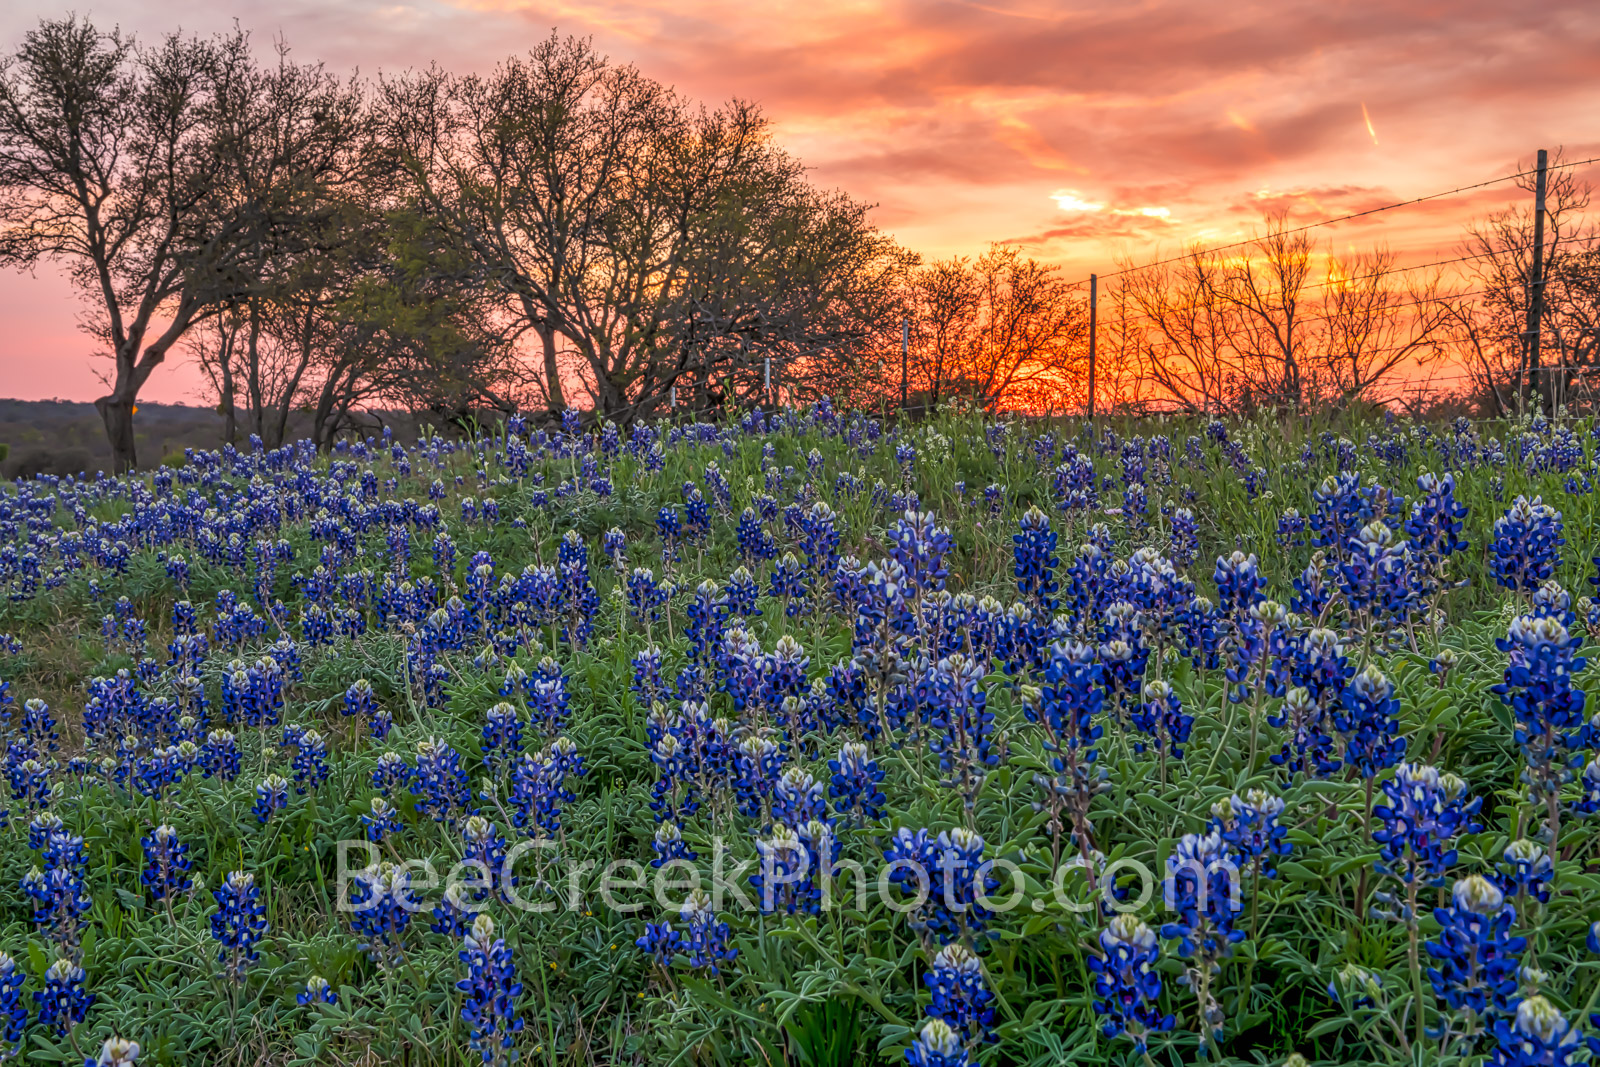 Bluebonnet, bluebonnets, image of bluebonnets, sunset, colorful, orange glow, vibrant, texas hill country, lupine, texas bluebonnets, fiery,, photo